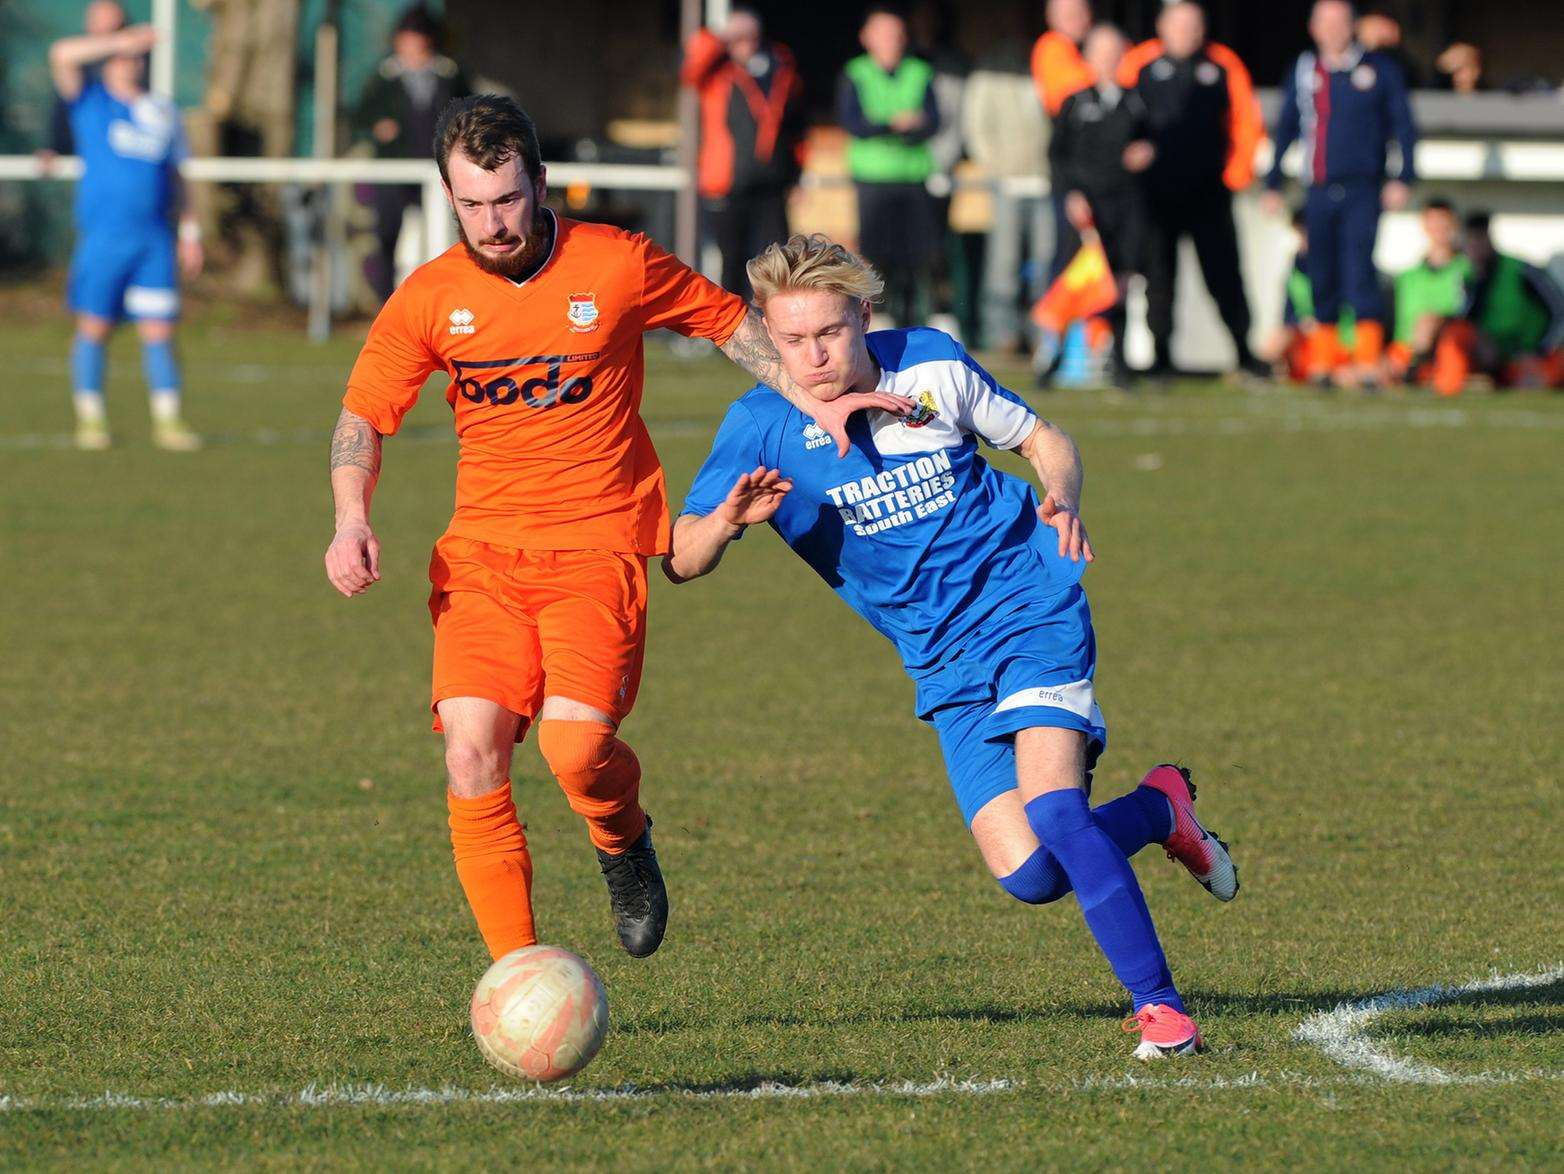 HELD OFF: Stephen Vincent (Diss - Orange) holds off the tackle of Rocha Foster (Cornard Utd - Blue) (Picture: Mecha Morton)